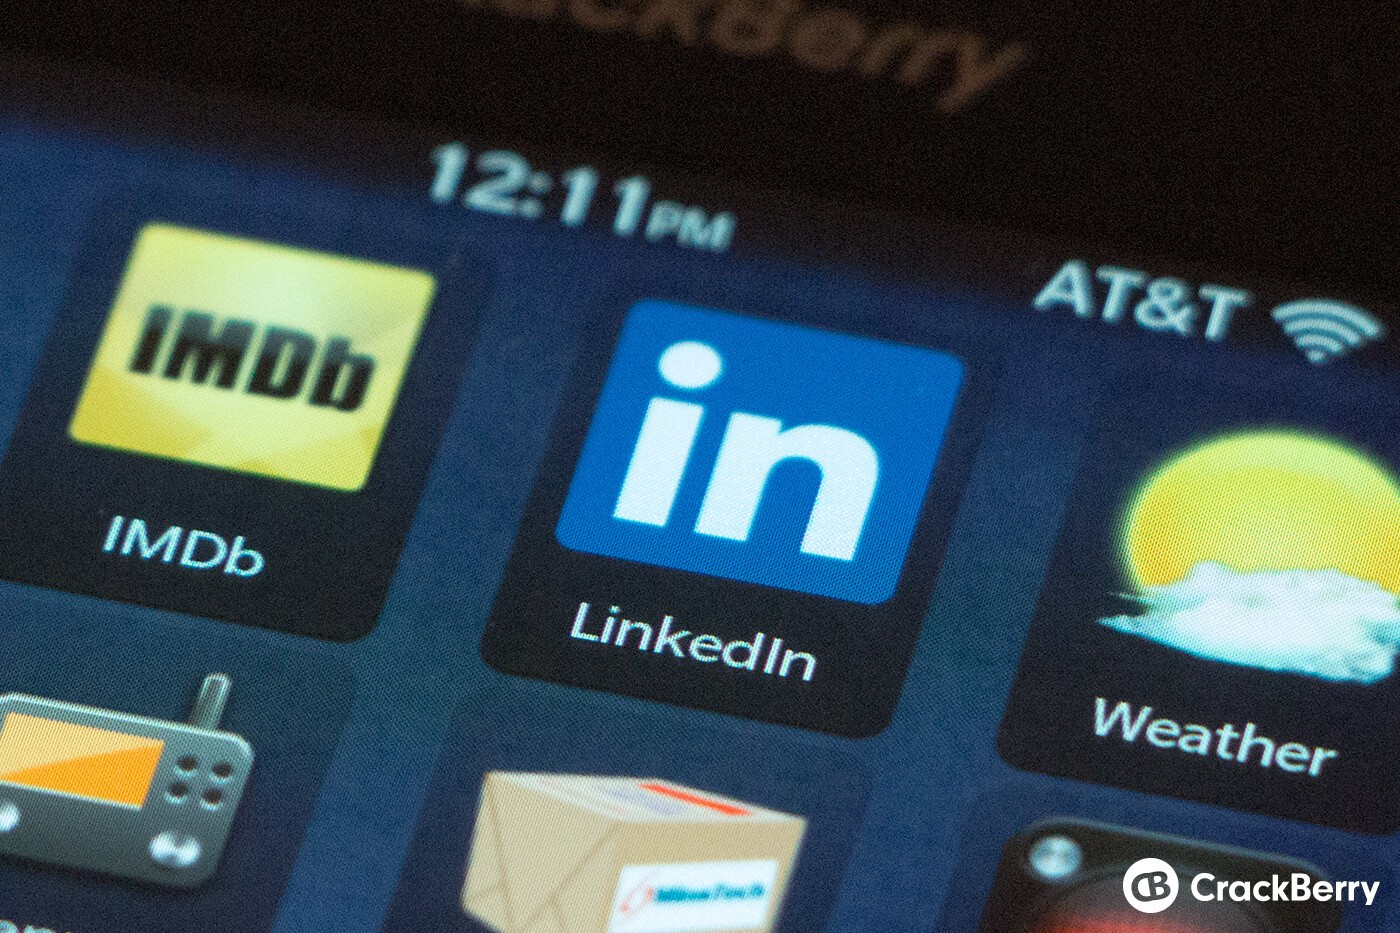 A new LinkedIn for BlackBerry 10 now available in BlackBerry World